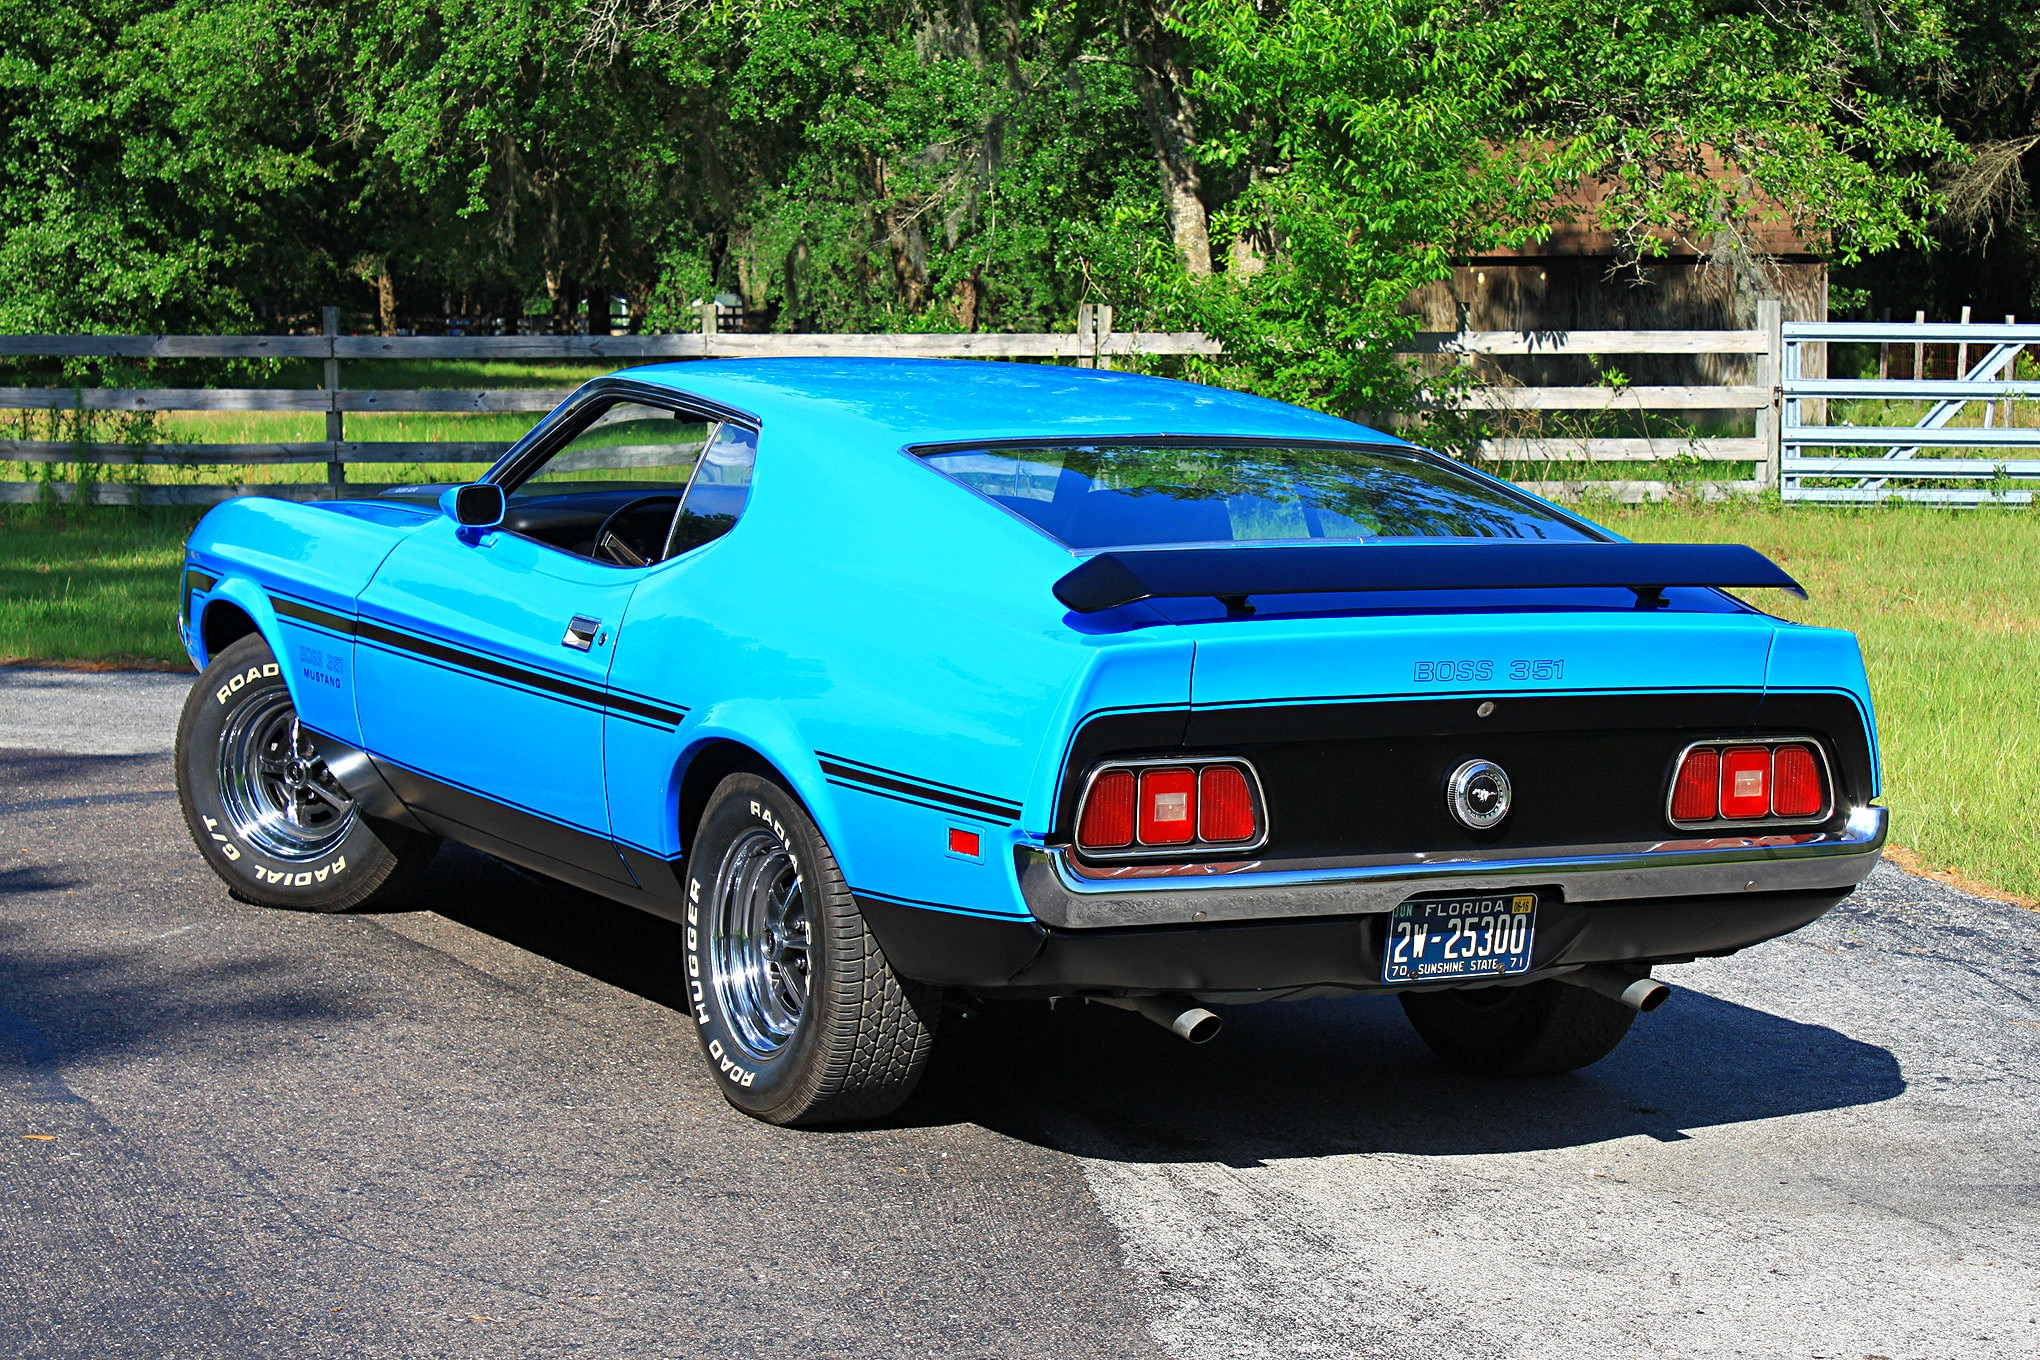 09 1971 Ford Mustang Boss 351 Blue Rear Three Quarter